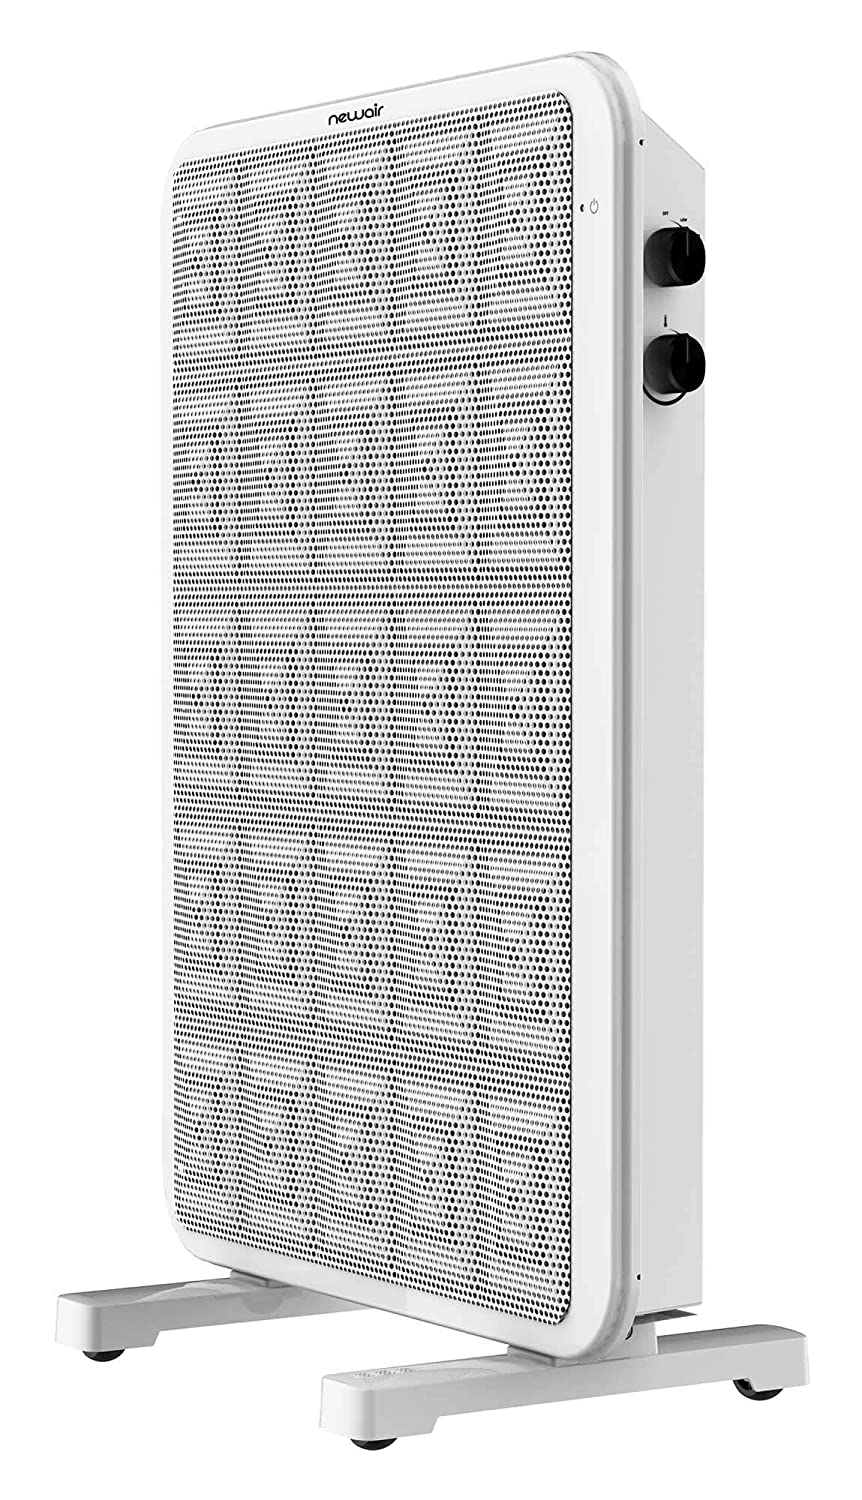 NewAir Portable Space Heater, Wall Mountable Electric Mica Room Heater for Indoor Use, AH-480